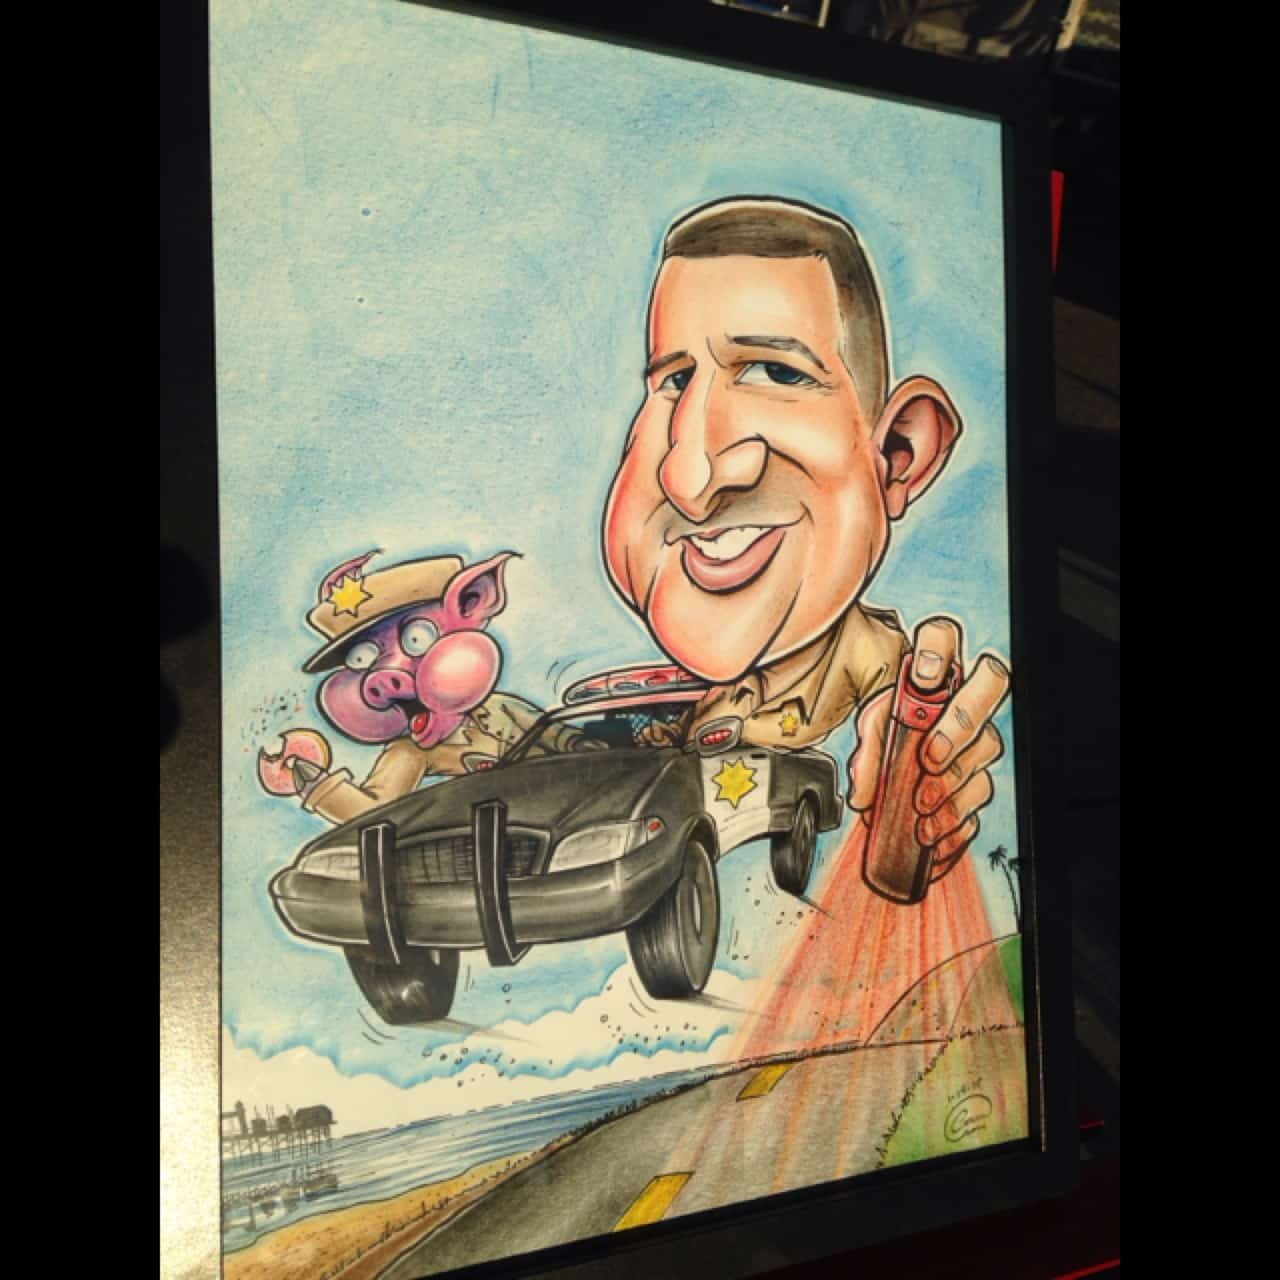 Custom Caricature Hand Drawn by San Diego Caricaturist Cameron Canles Given as a Retirement Gift.